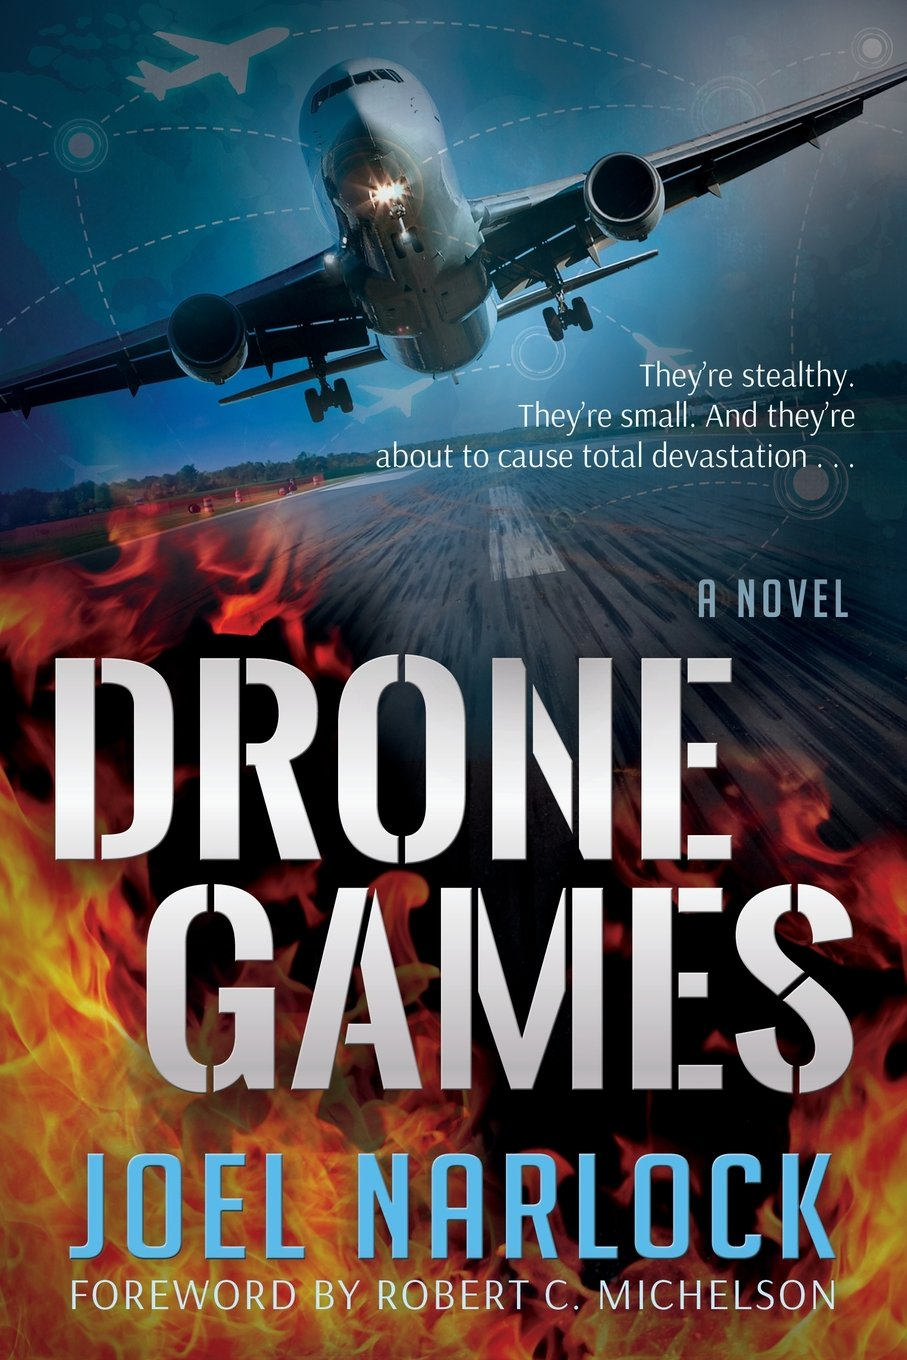 Image For Drone games<br>Joel Narlock